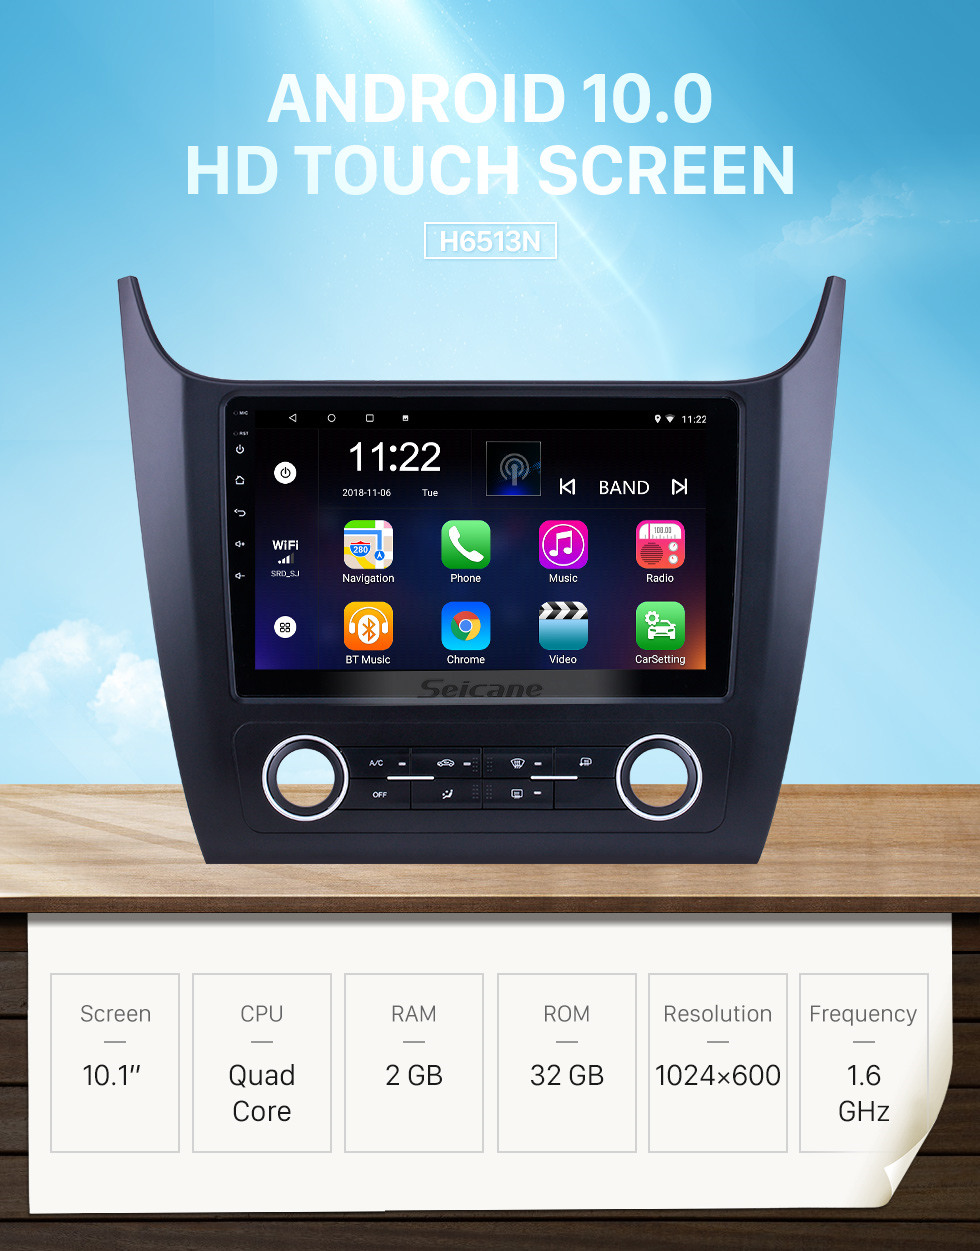 Seicane HD Touchscreen 10.1 inch for 2019 Changan Cosmos Manual A/C Radio Android 10.0 GPS Navigation System with Bluetooth support Carplay DAB+